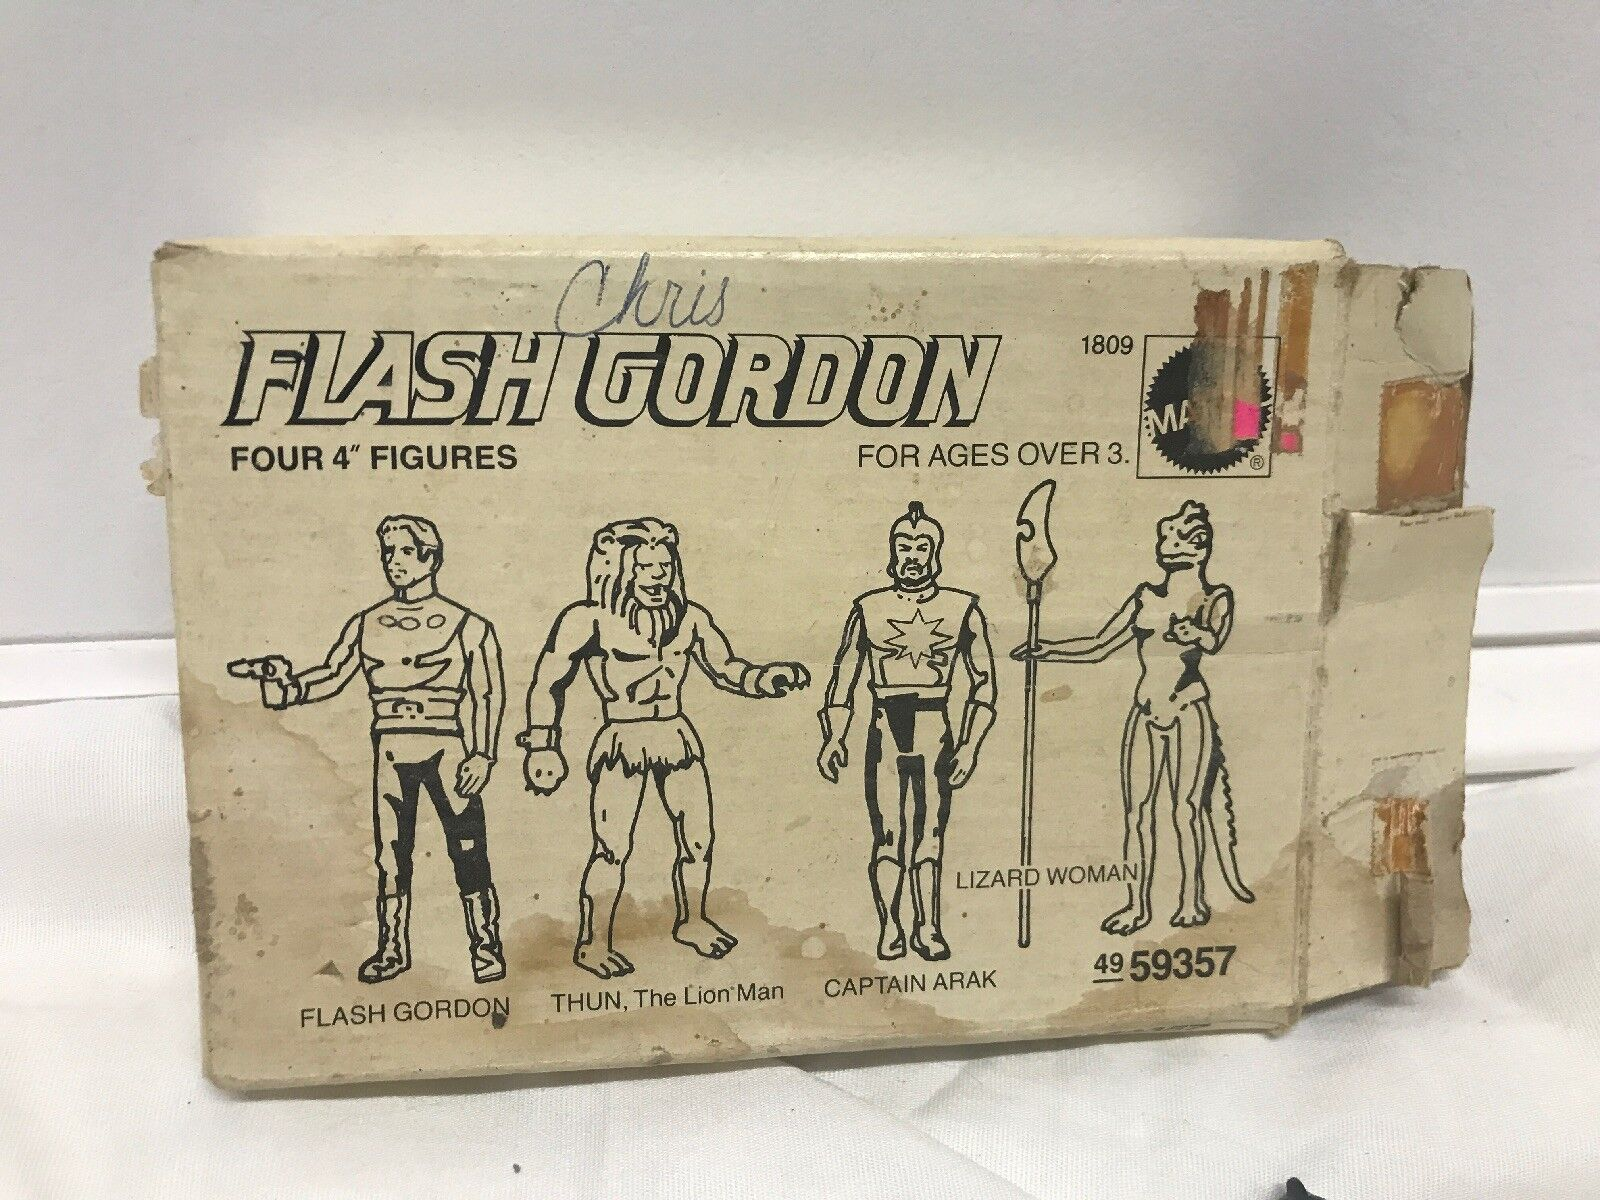 Flash Gordon Sears Mail Away Box 1979 Mattel Missing Missing Missing Thun Not Complete Figures 6f53e5